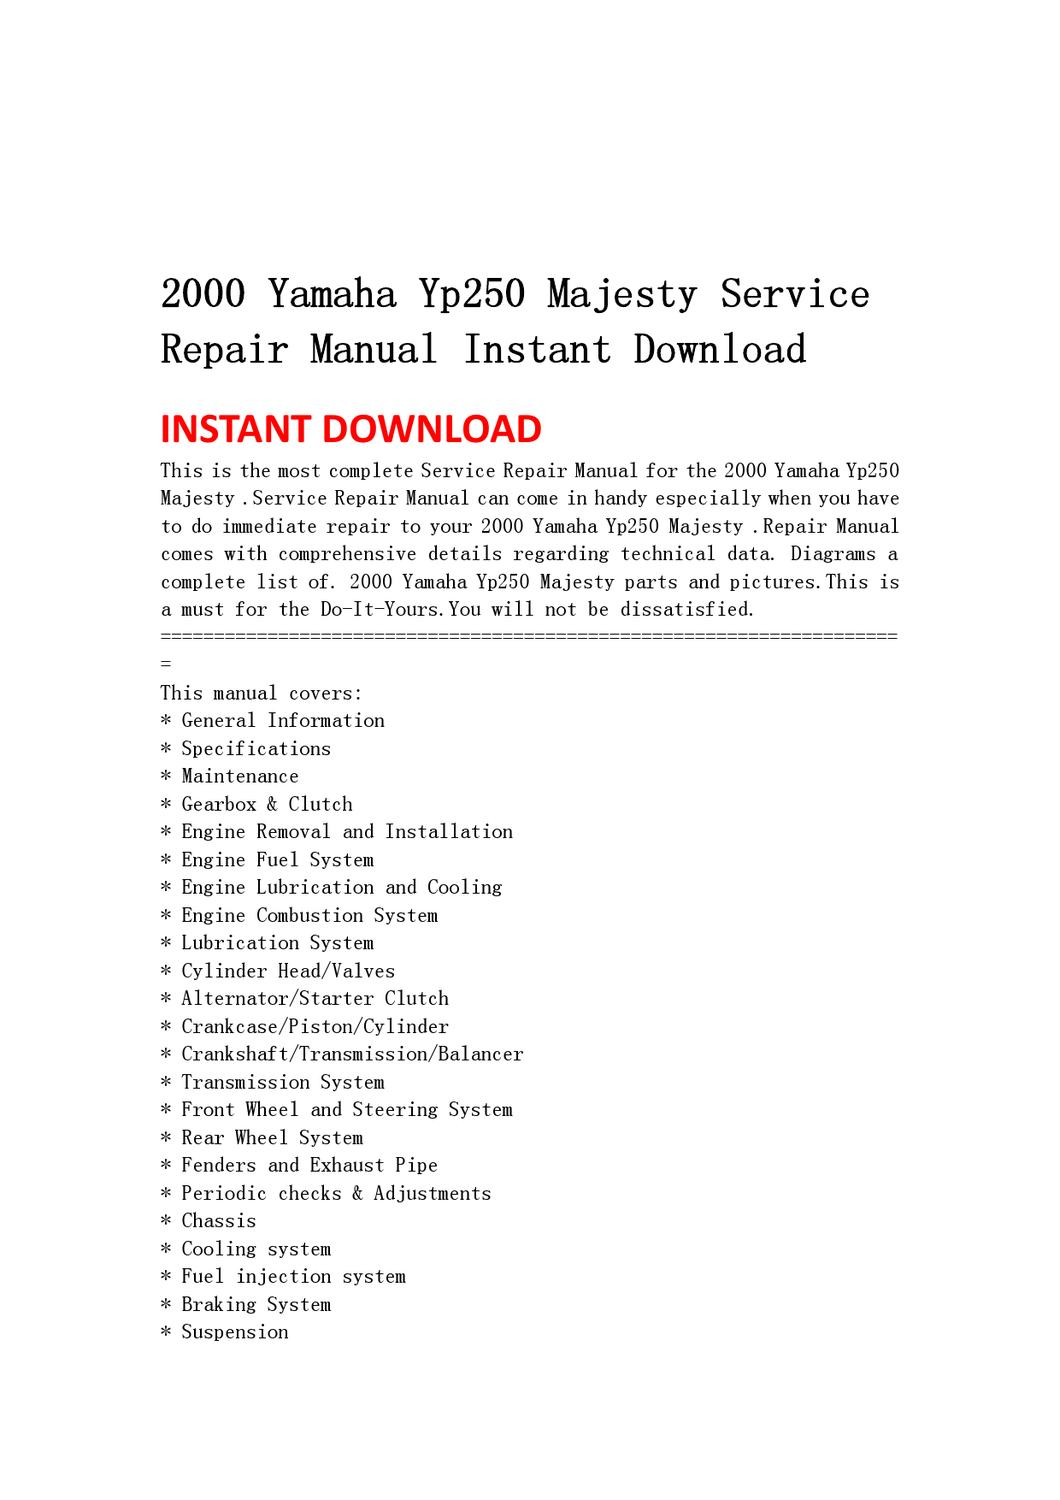 Yp250 Wiring Diagram Data Yamaha Dt 175 Database Light Switch Home 2000 Majesty Service